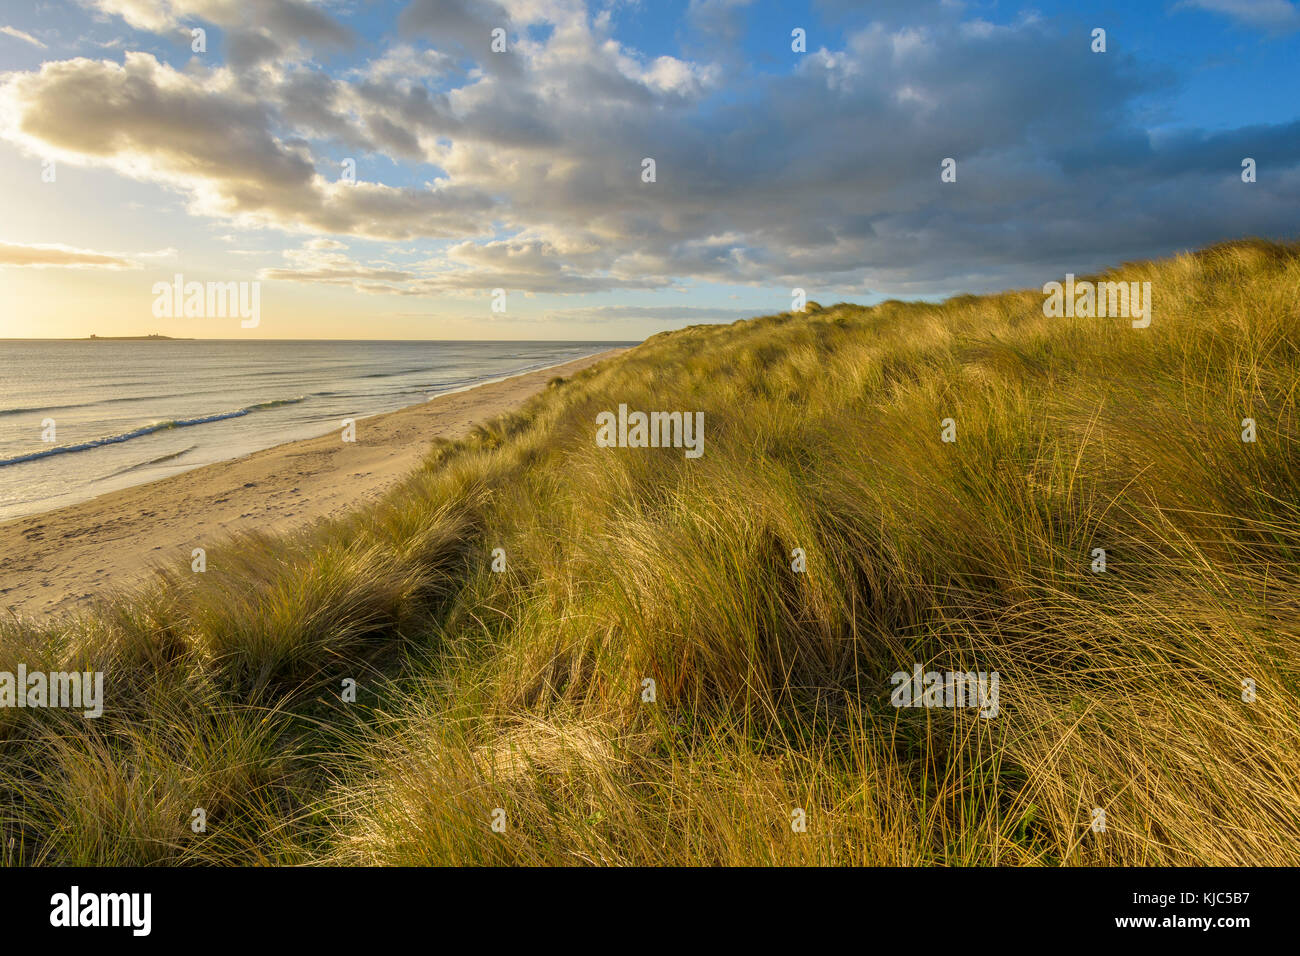 Dune grass on sand dunes on the beach at sunrise along the North Sea at Bamburgh in Northumberland, England, United - Stock Image